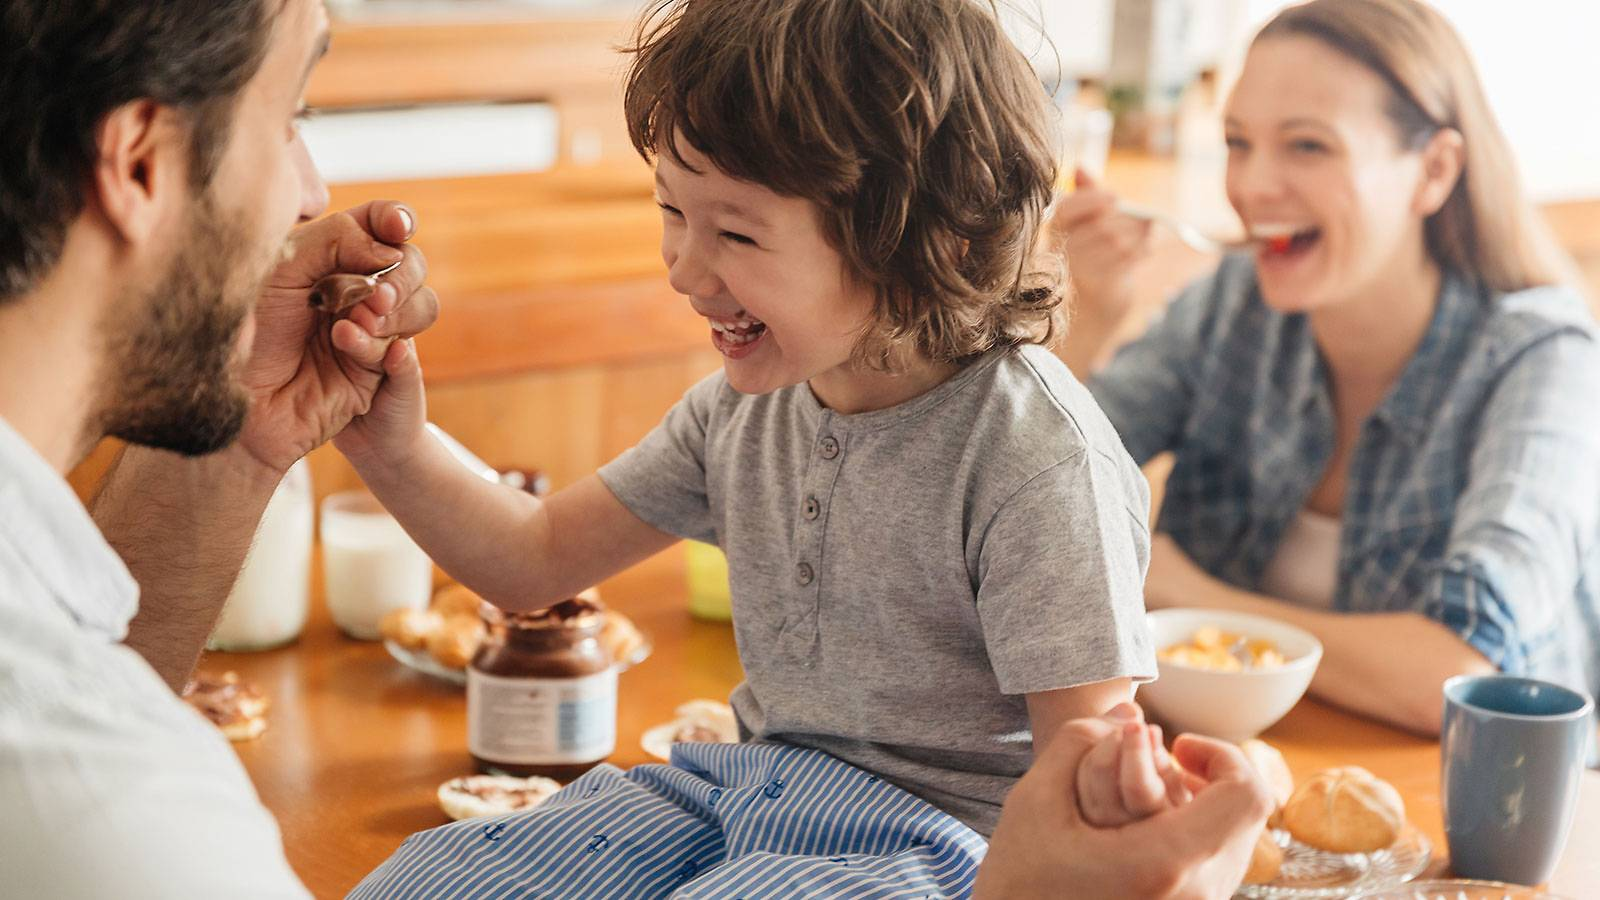 Tots-6-common-feeding-mistakes-parents-make-2